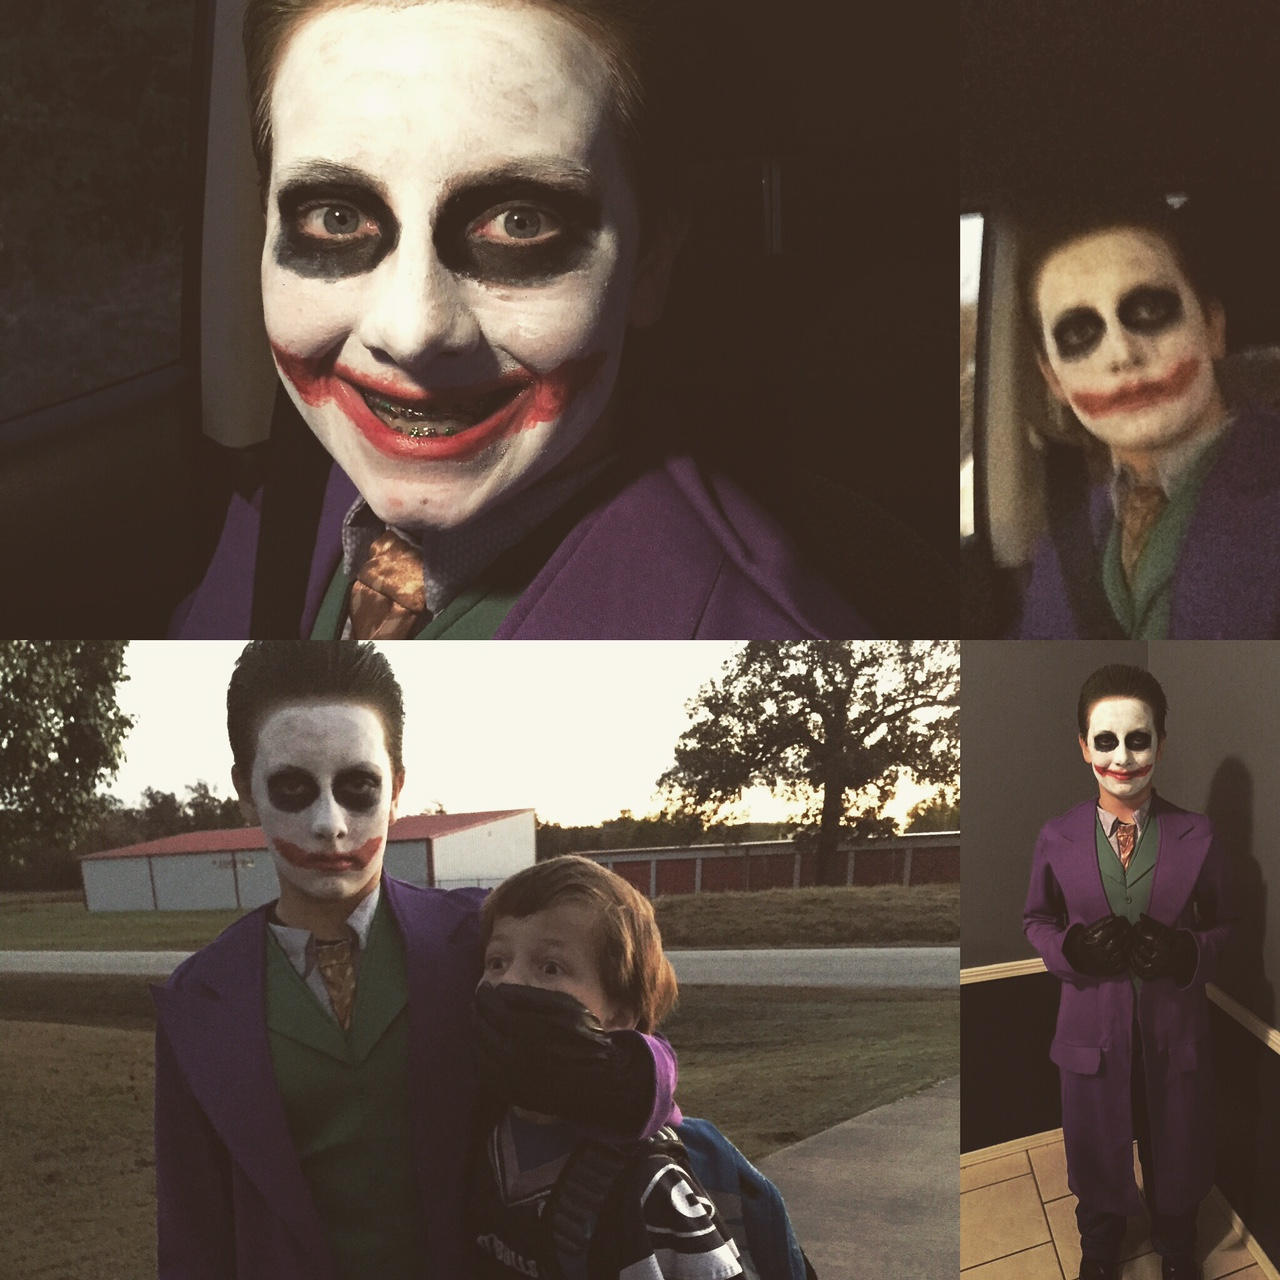 Caleb Niles as the Joker